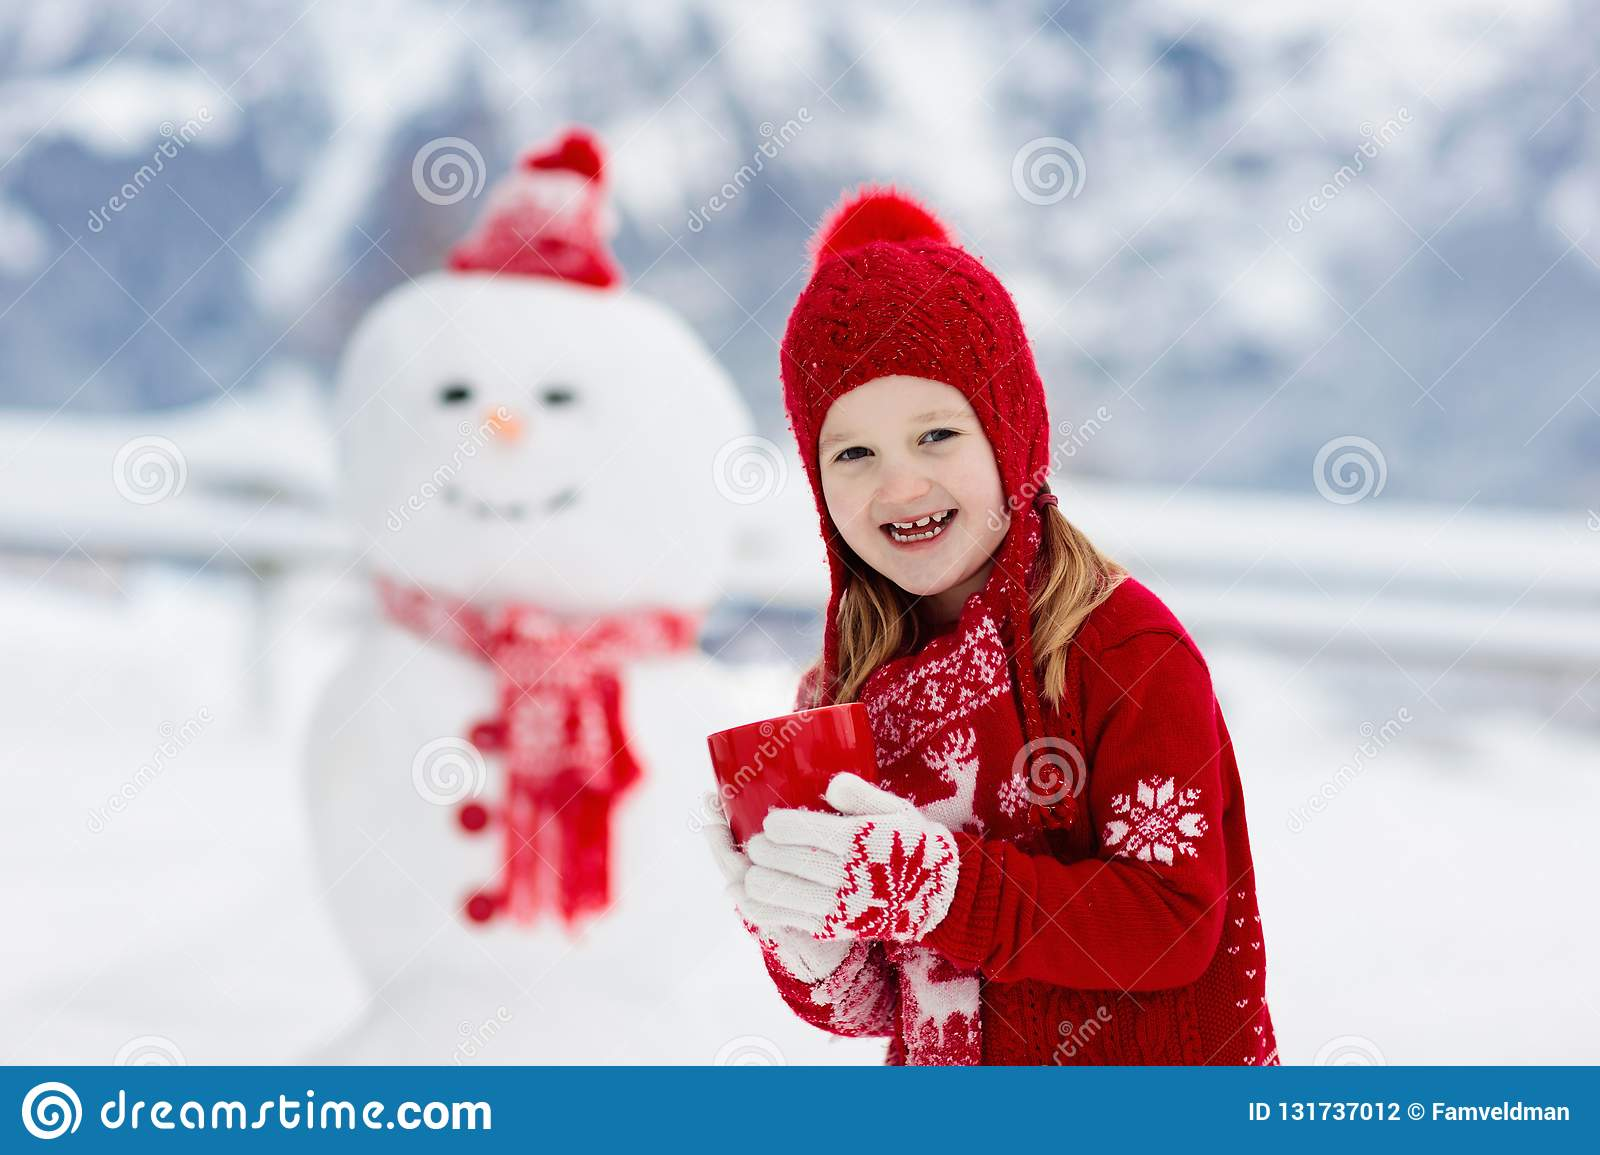 Child building snowman. Kids build snow man. Boy and girl playing outdoors on snowy winter day. Outdoor family fun on Christmas